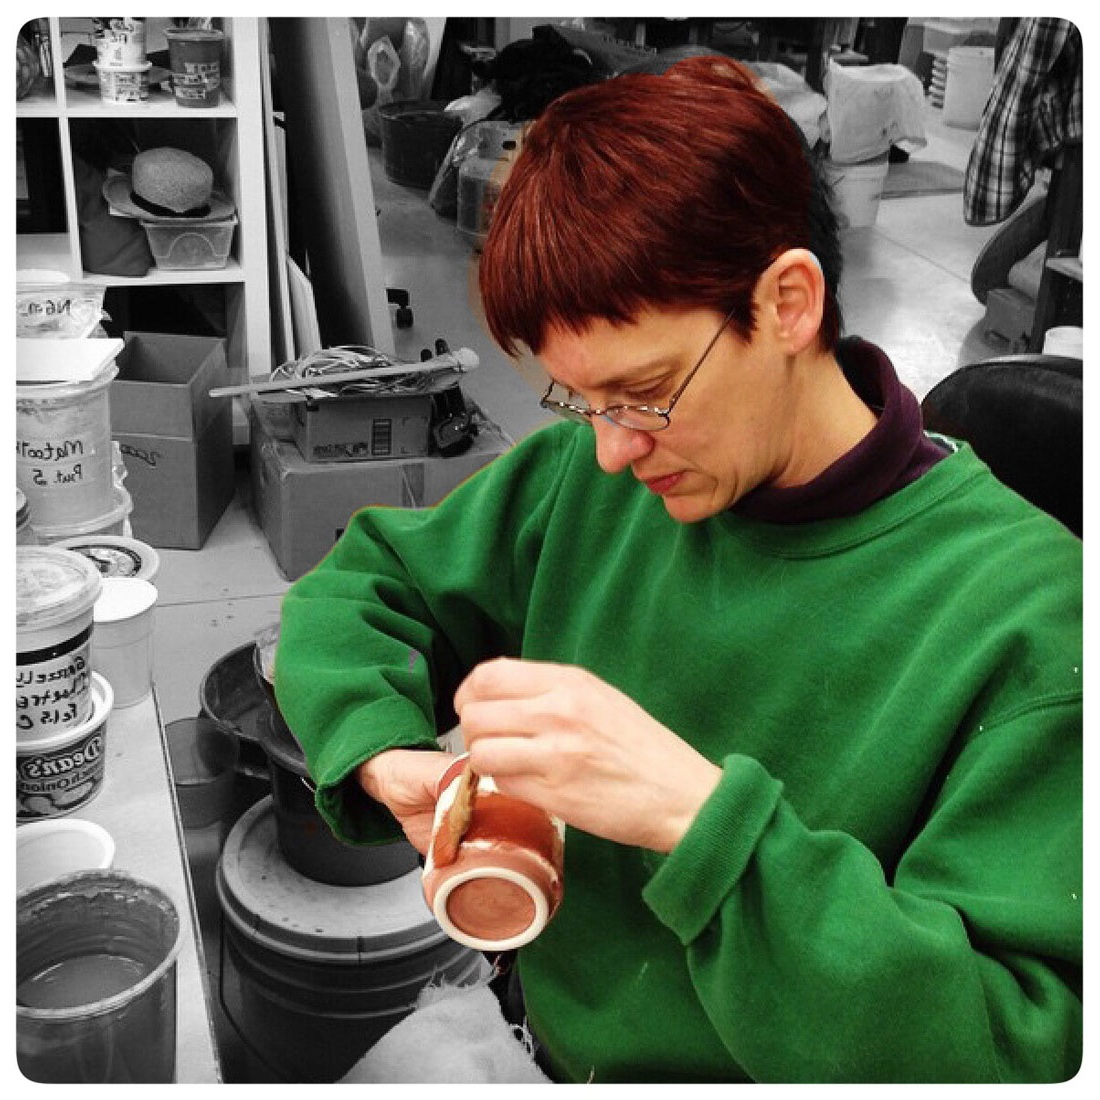 Samantha Henneke glazing a cup in the Bulldog Pottery studio in Seagrove, North Carolina